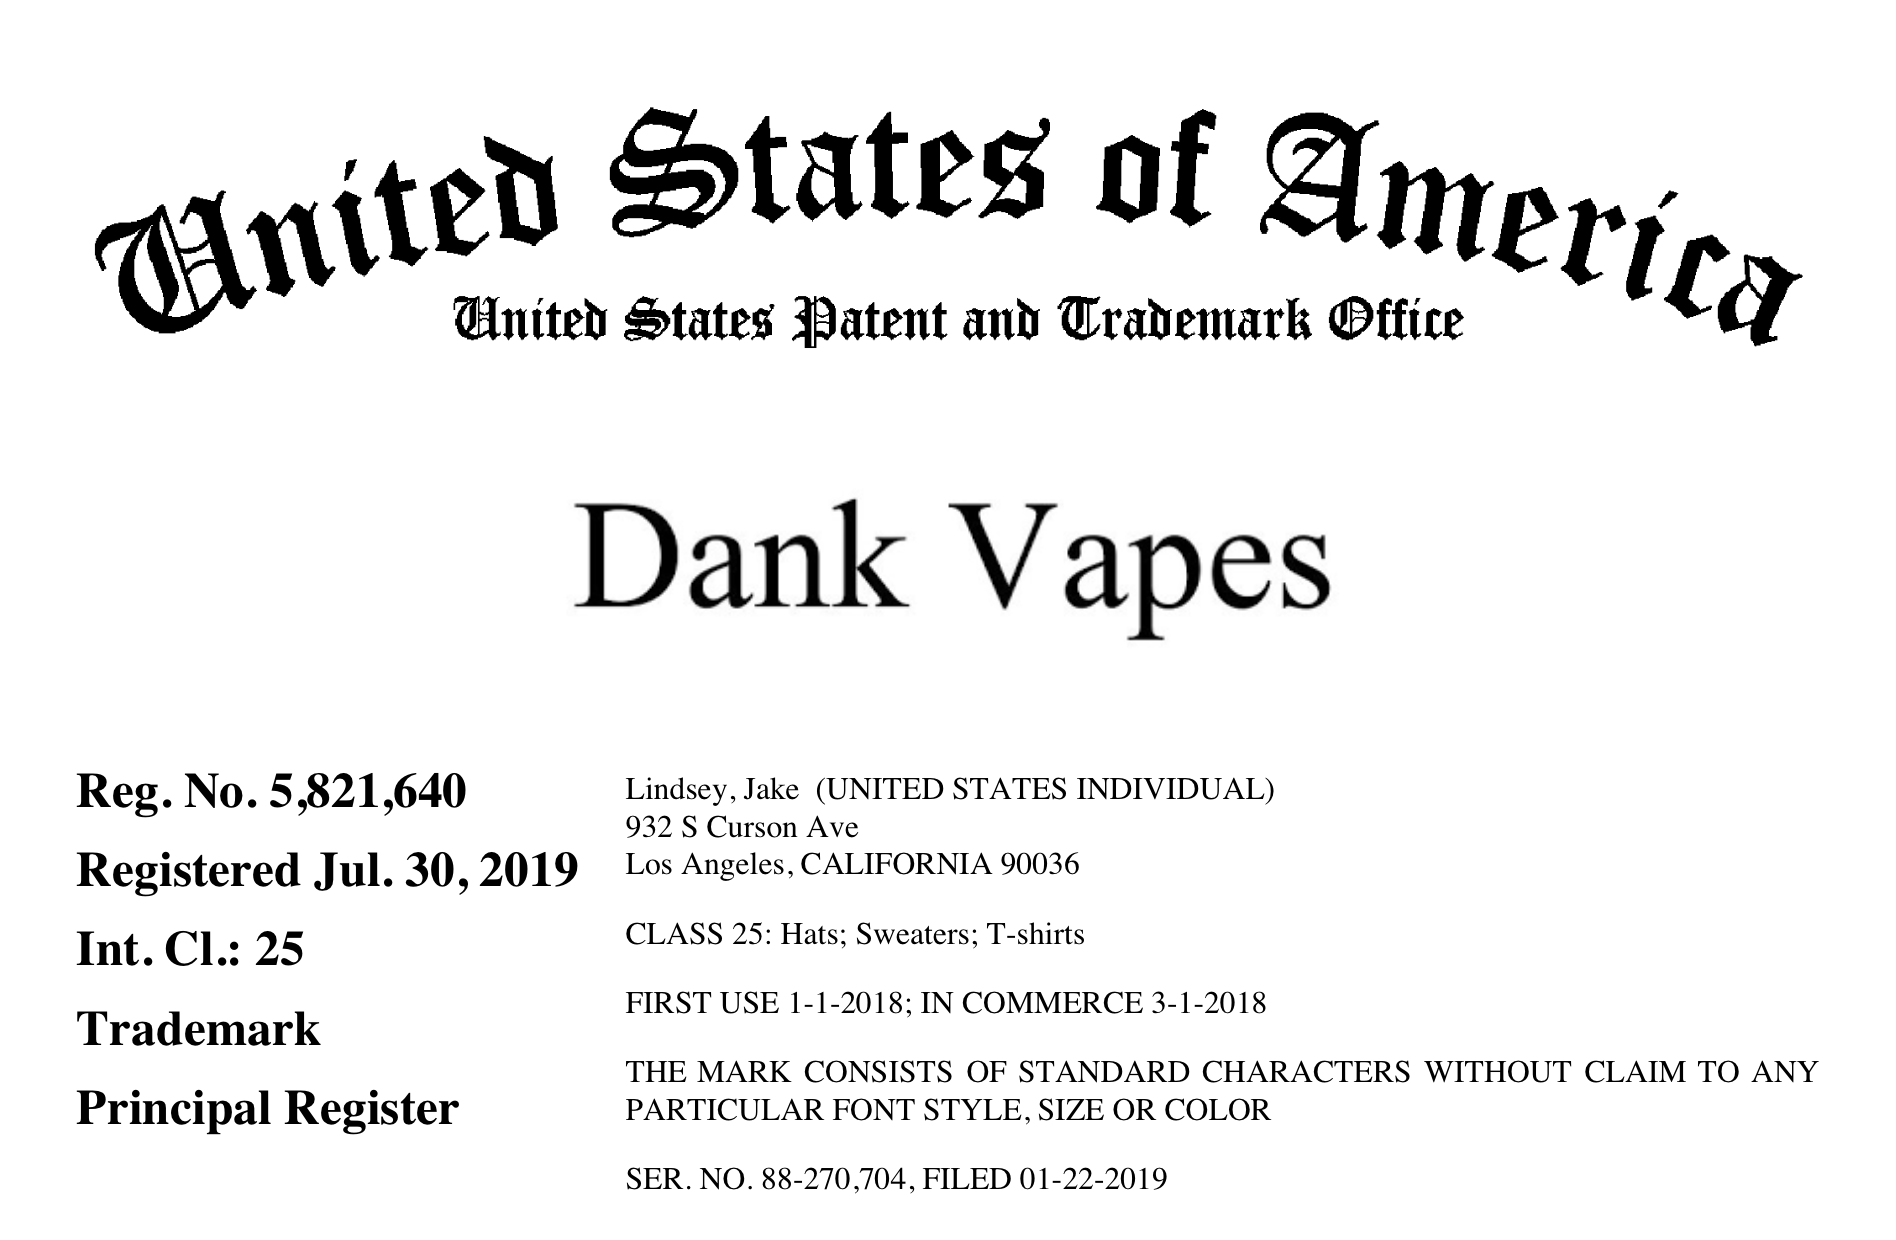 Dank Vapes Is the